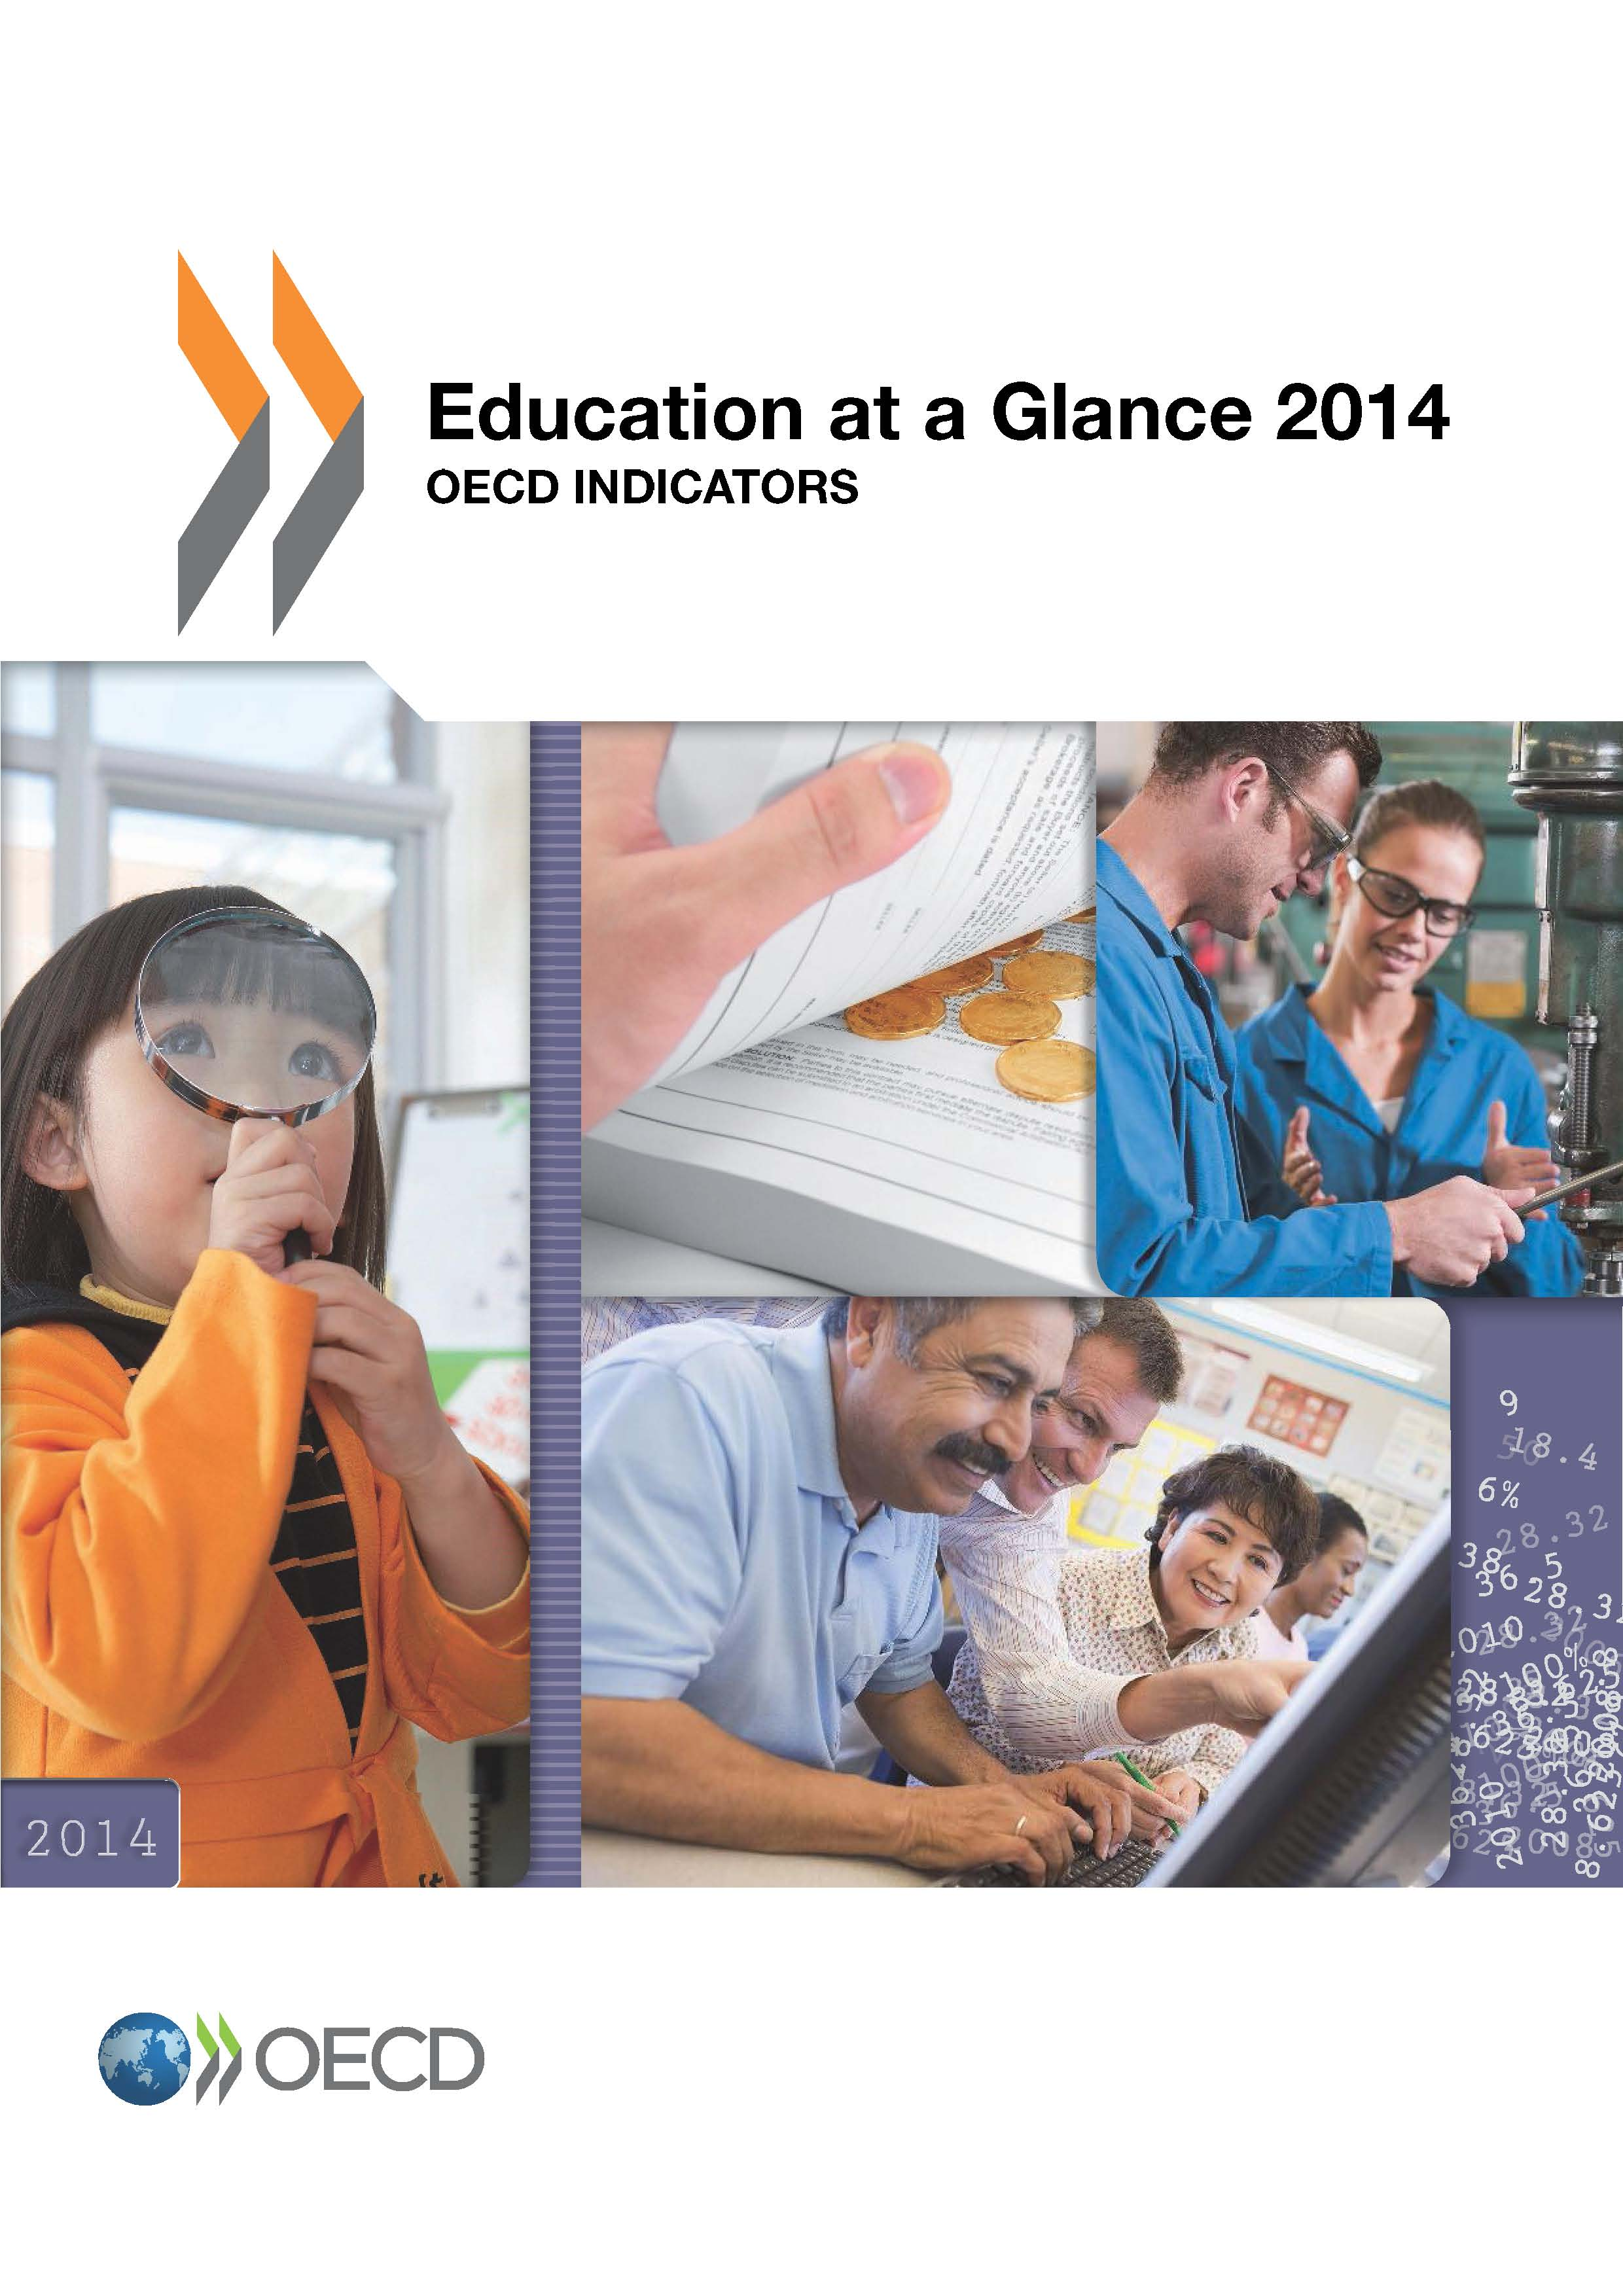 Education-at-a-Glance-2014-capa